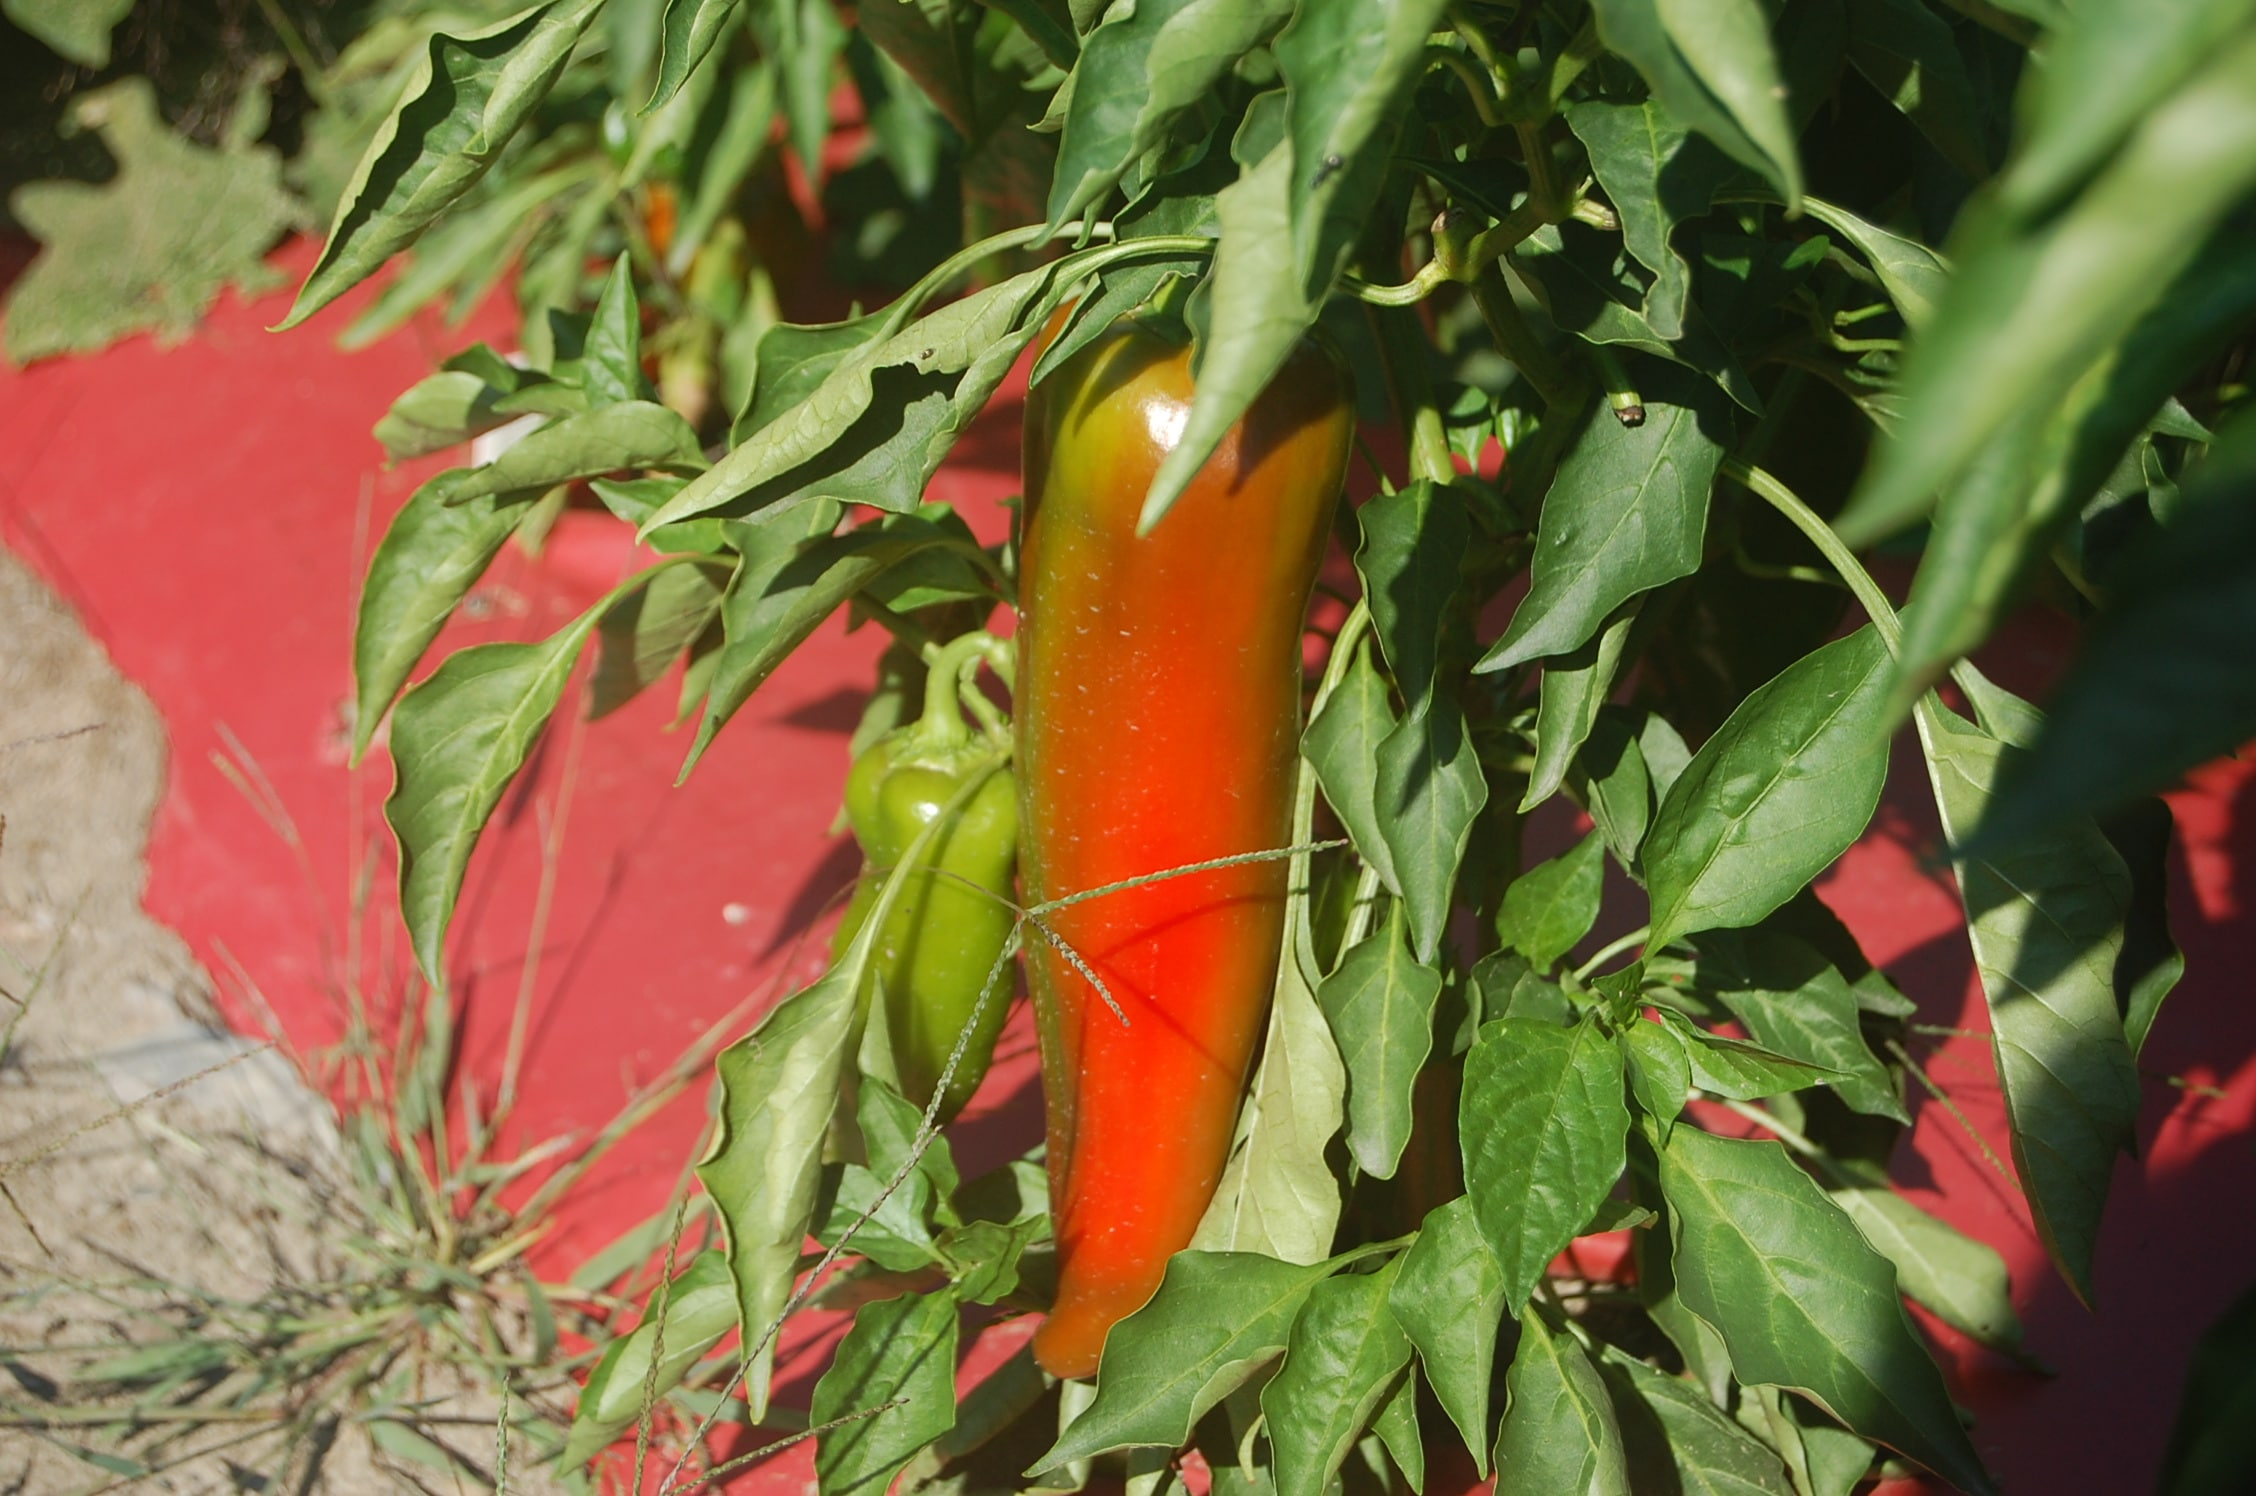 Leave peppers on the vine to sweeten